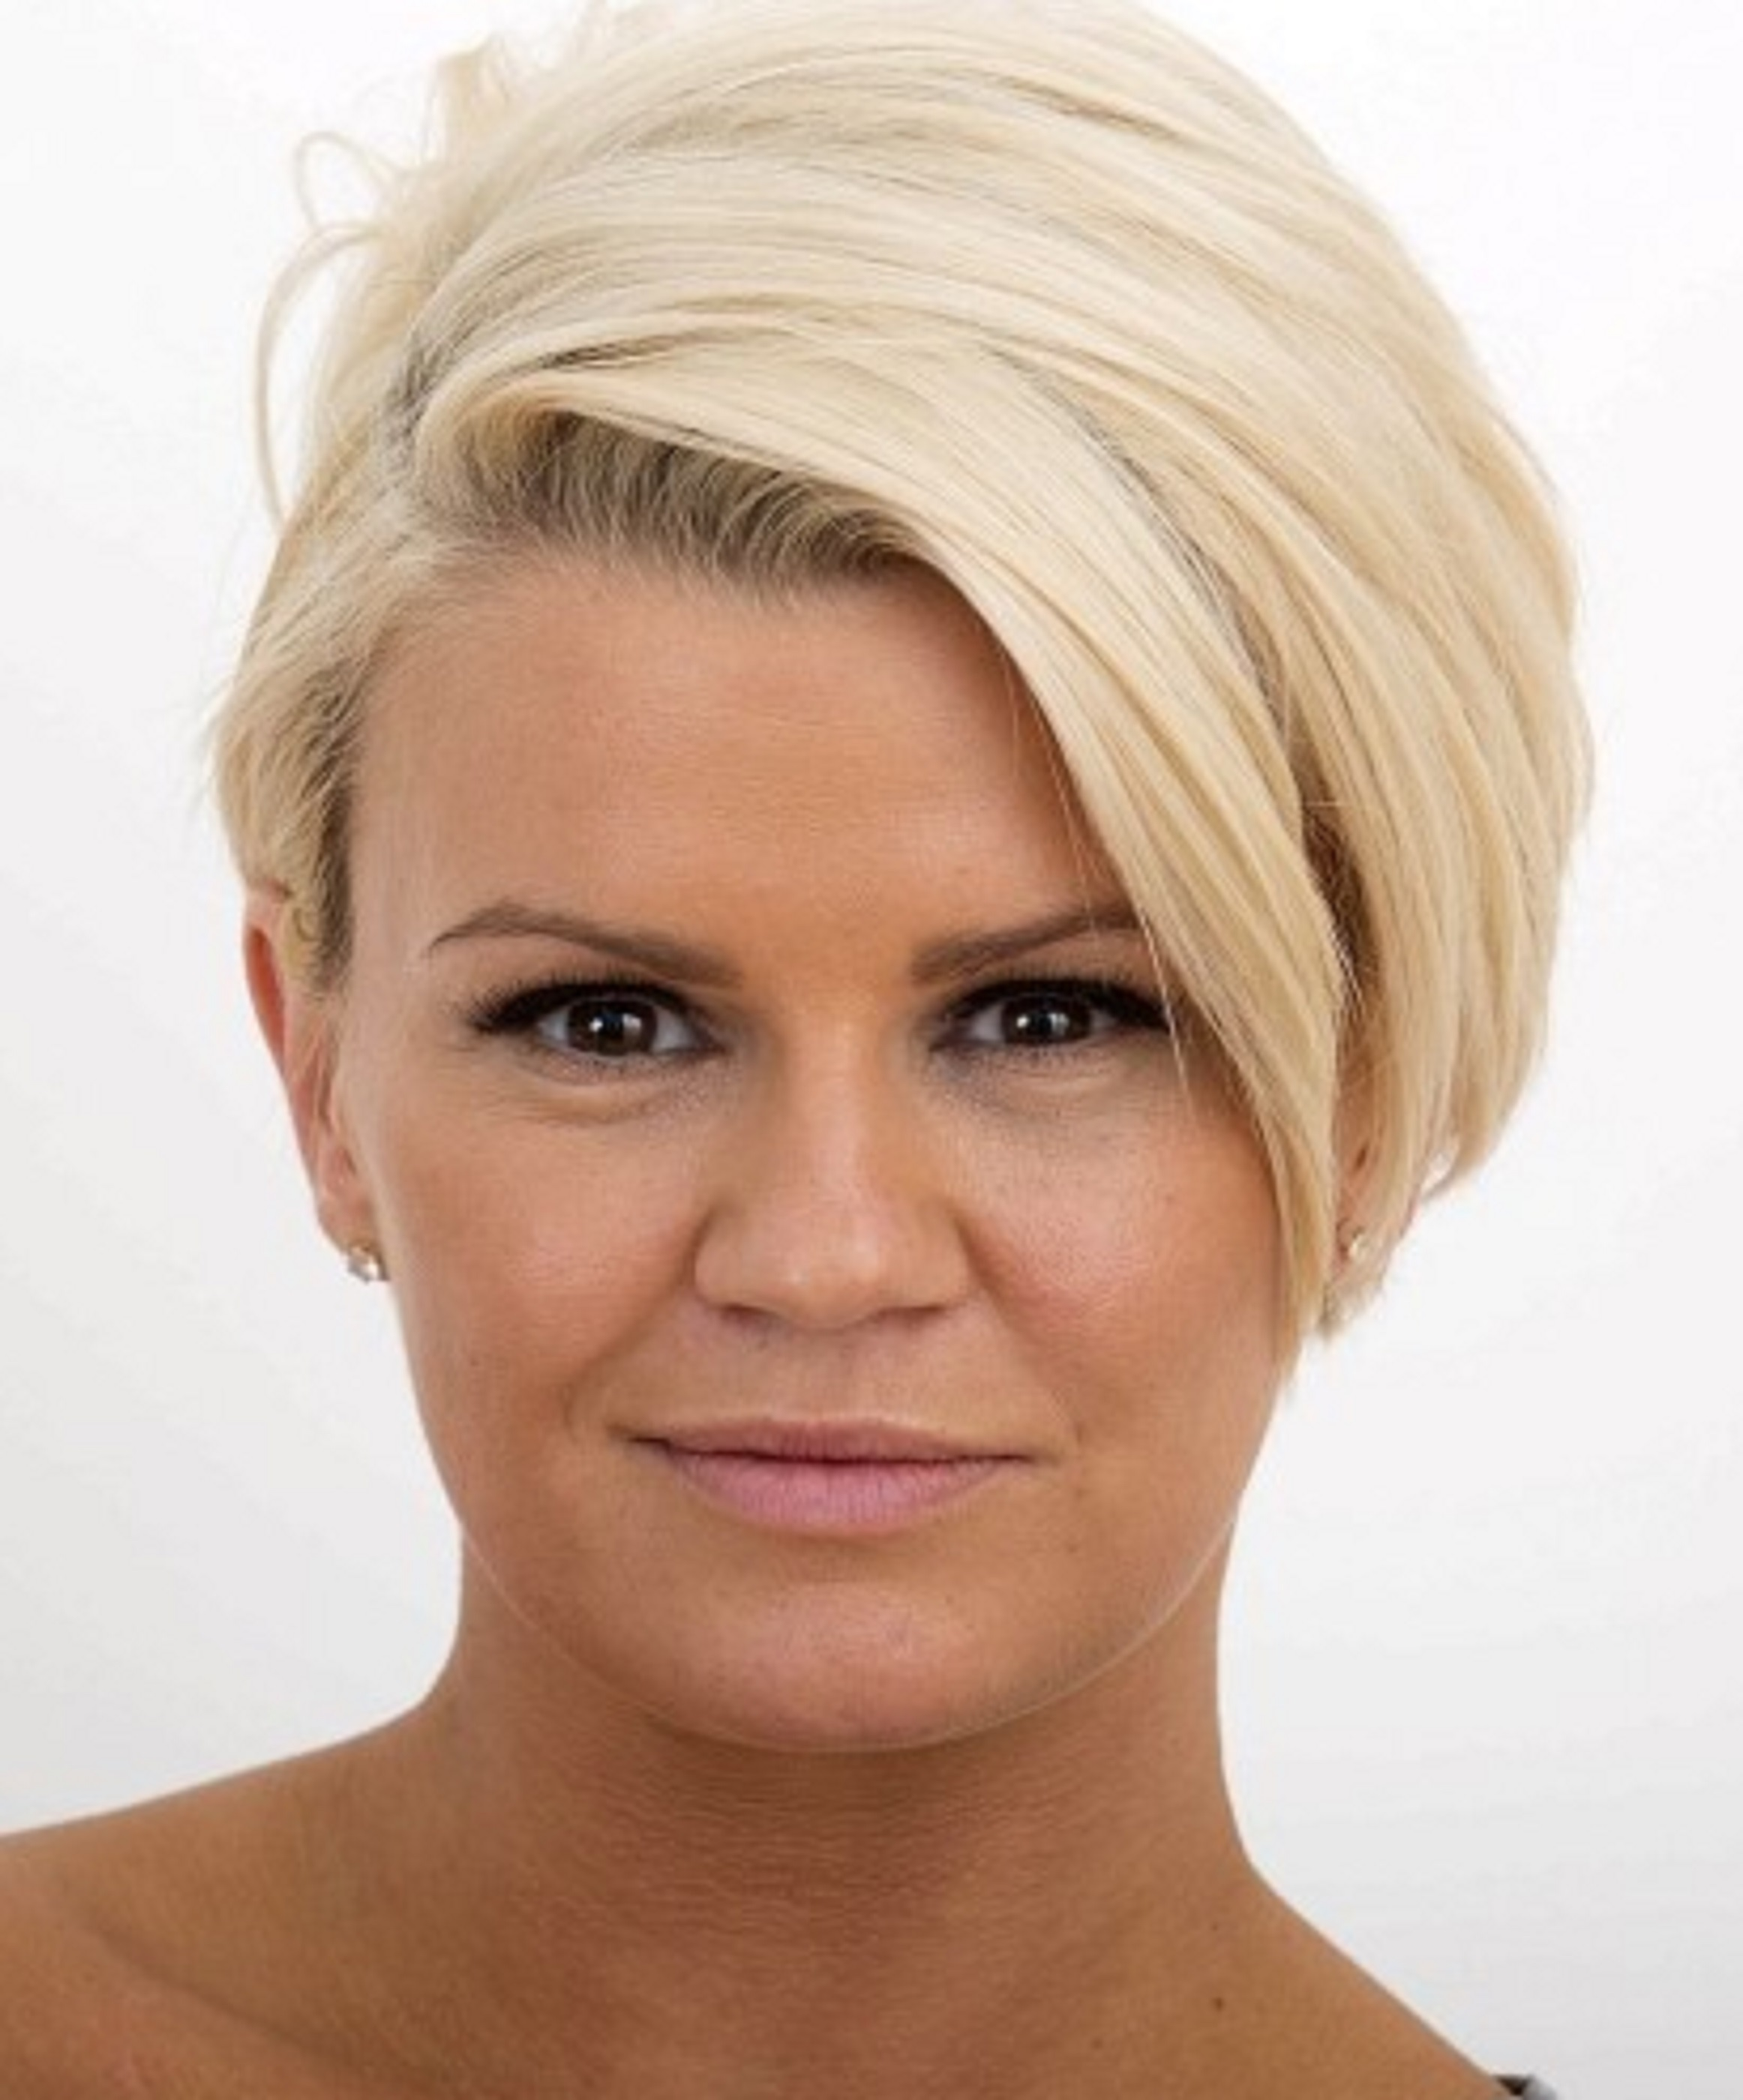 Images Kerry Katona nudes (34 foto and video), Sexy, Hot, Instagram, braless 2018